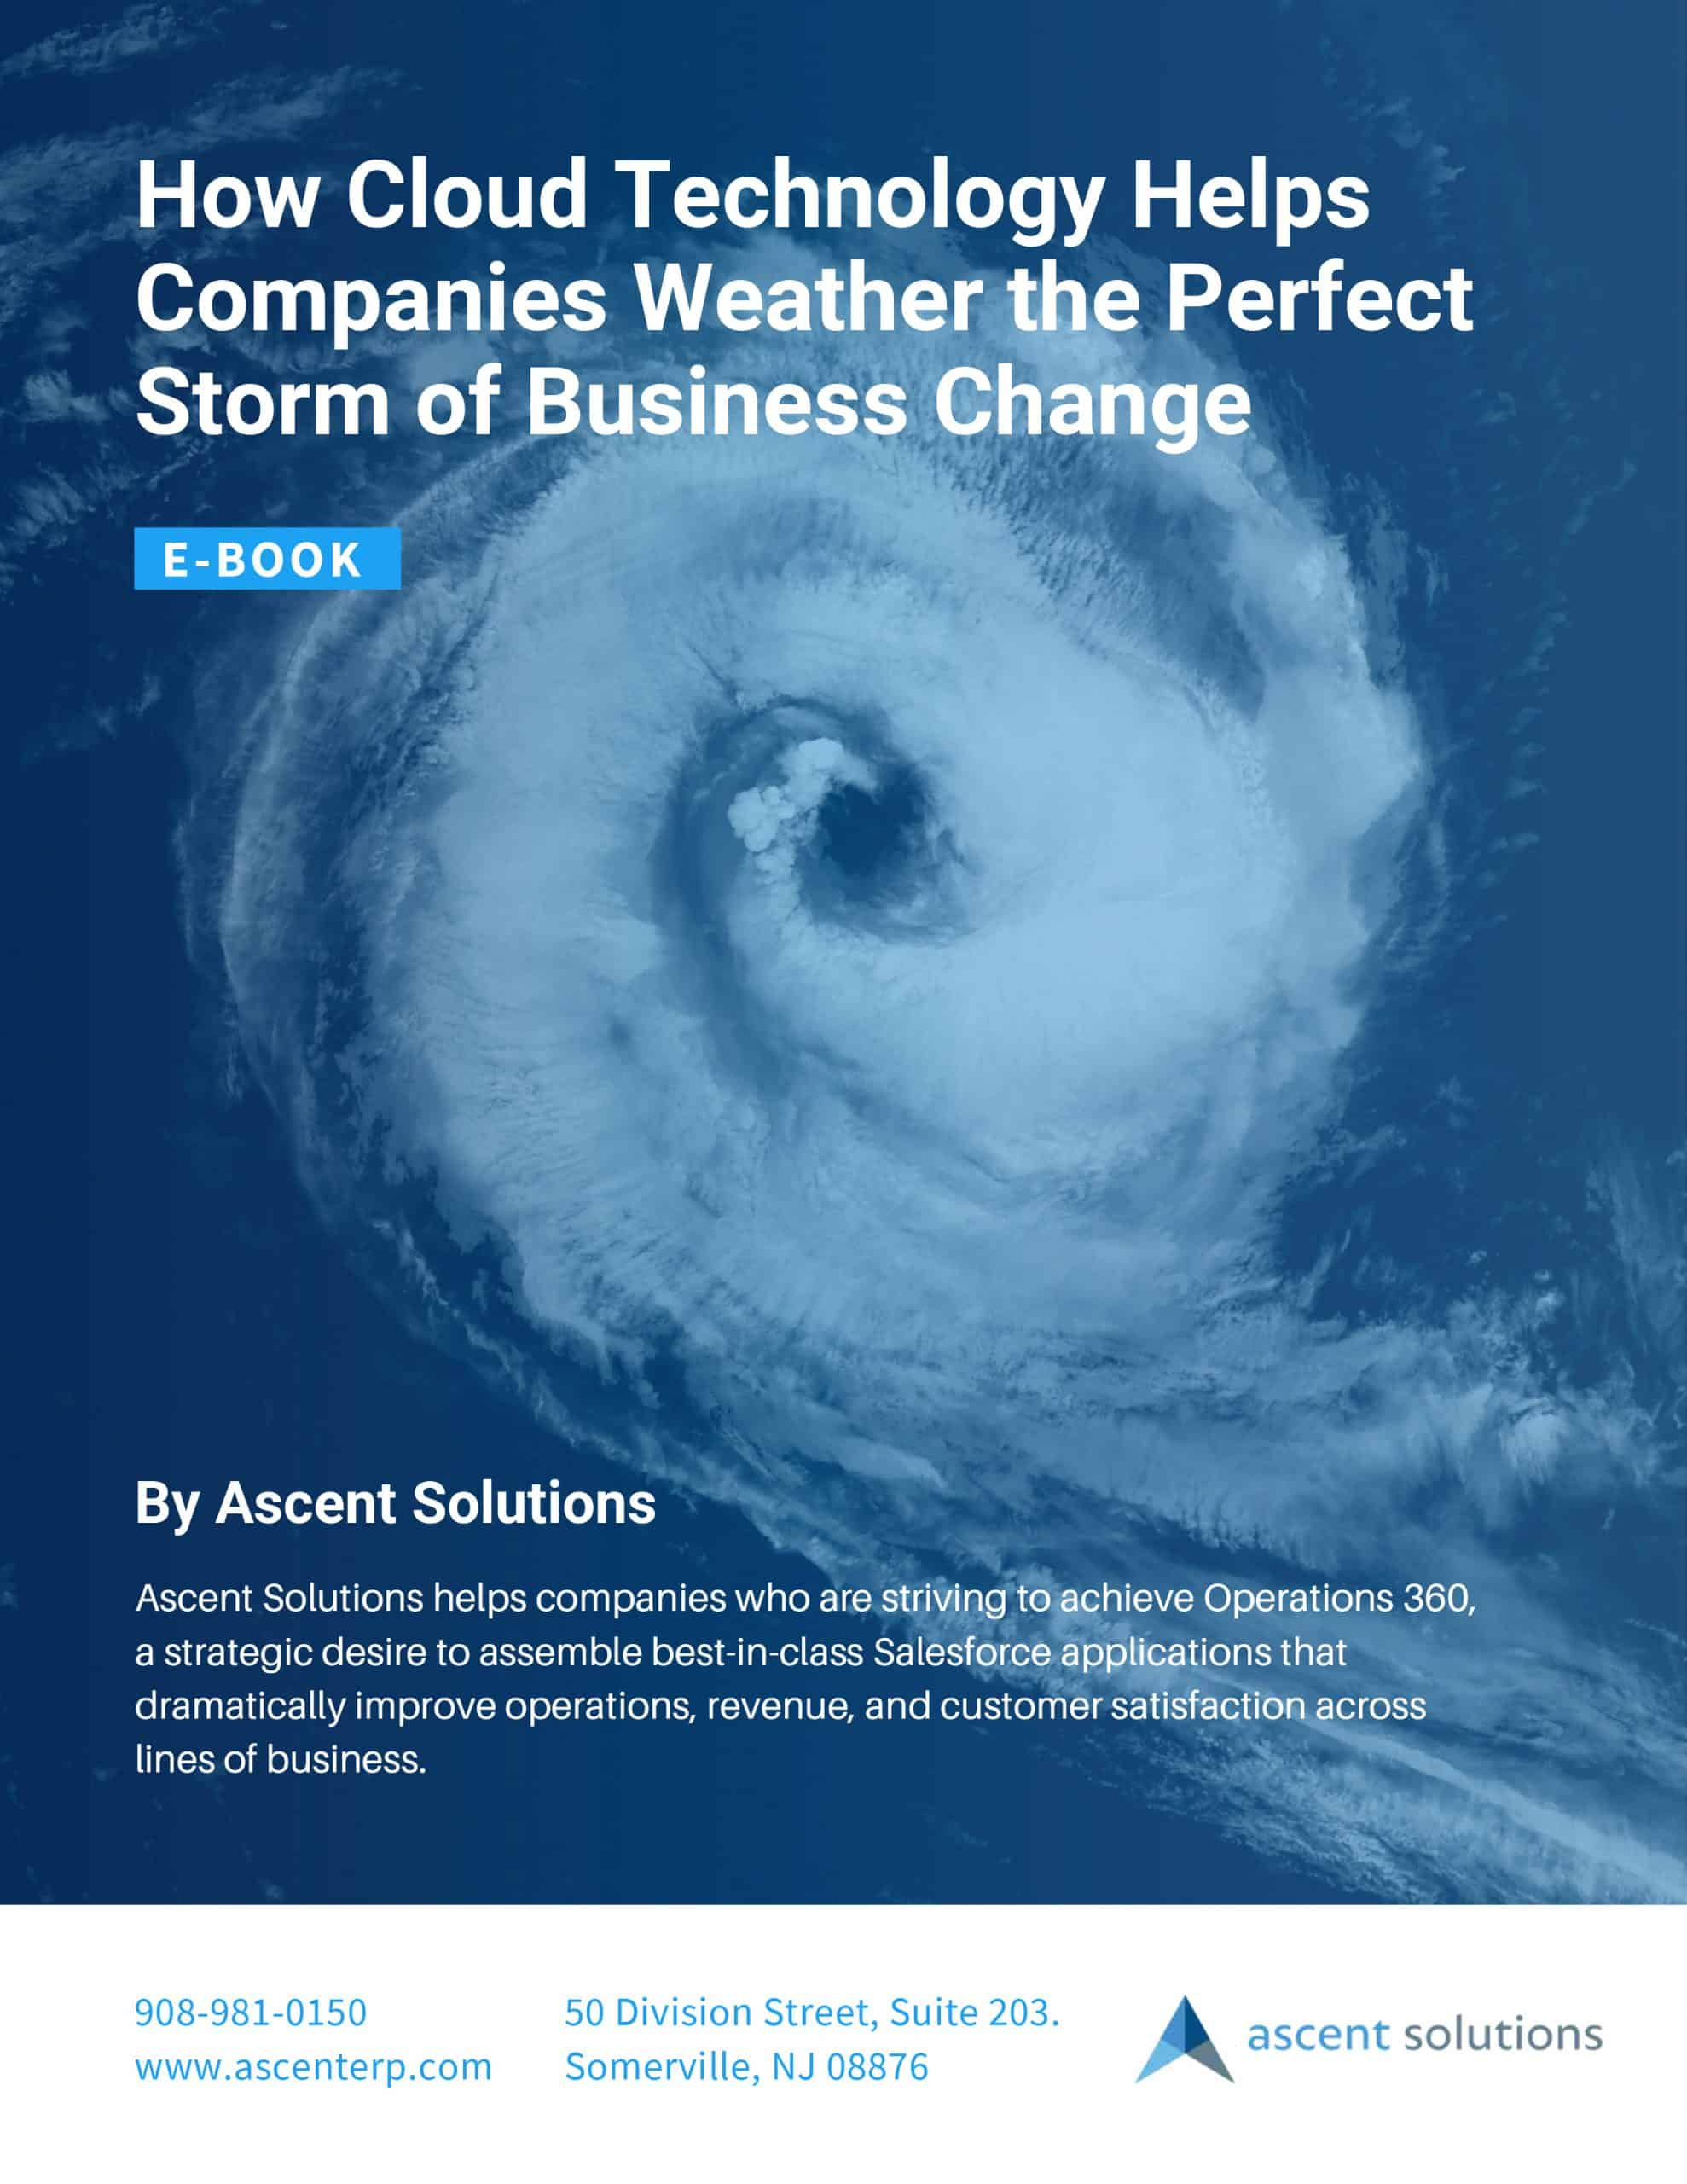 How Cloud Technology Helps Companies Weather the Perfect Storm of Business Change